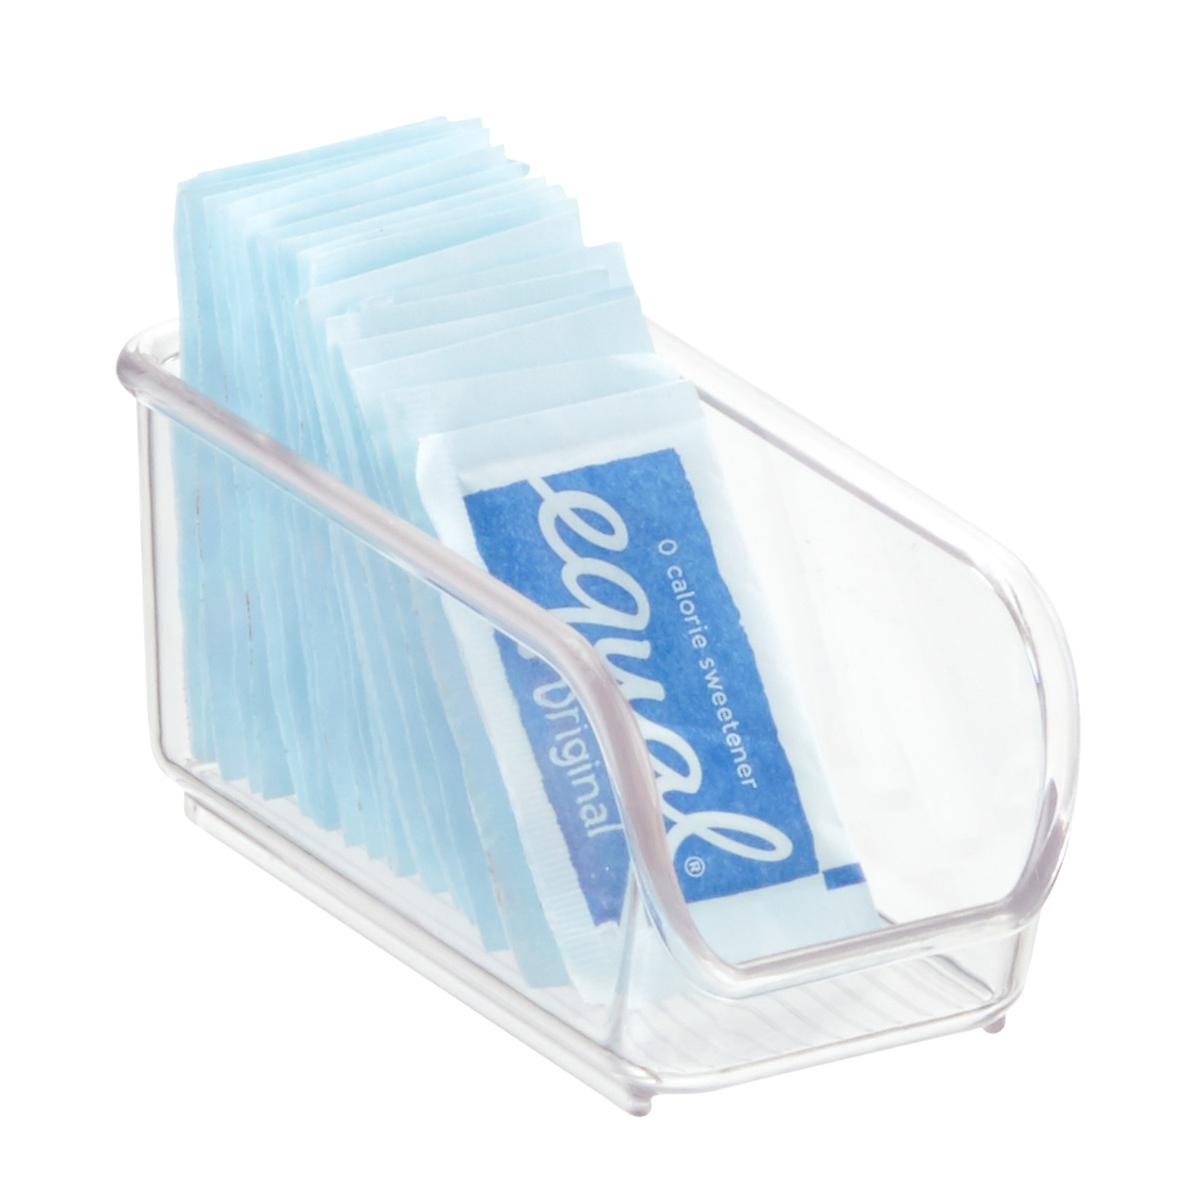 iDesign Linus Sugar Packet Holder